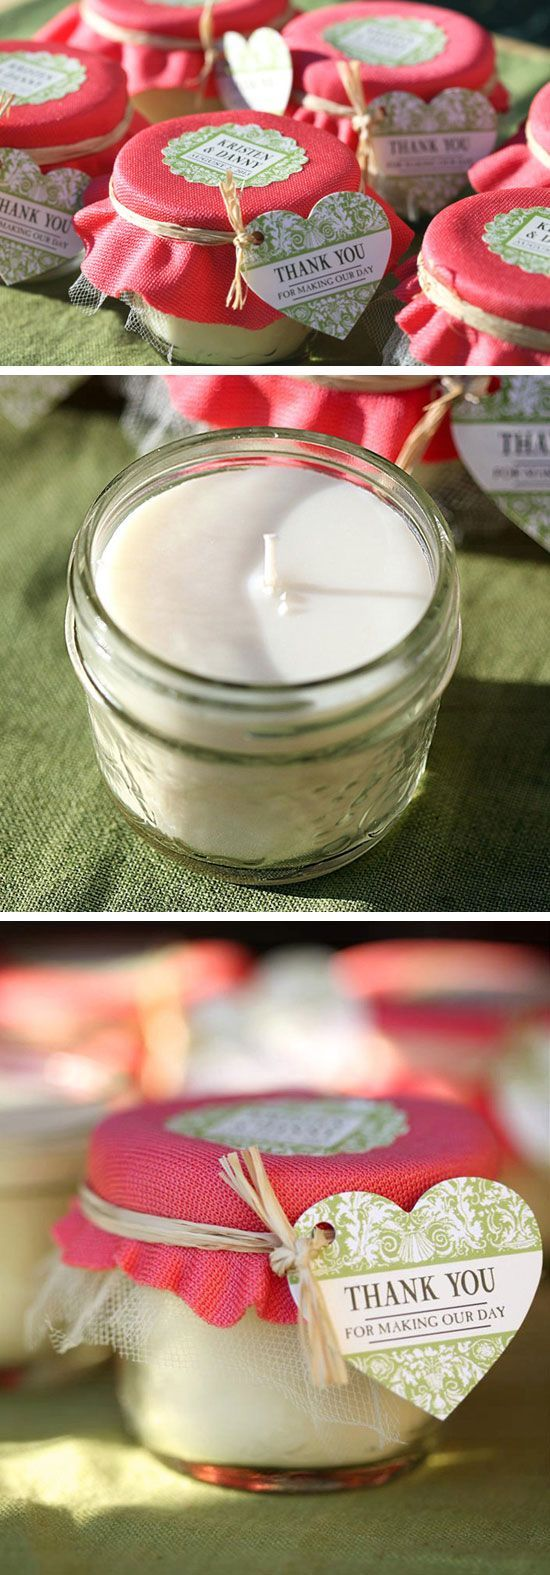 Mason Jar Candle Wedding Favors | Click Pic for 22 DIY Winter Wedding Ideas Dollar Stores | DIY Winter Wonderland Wedding Ideas